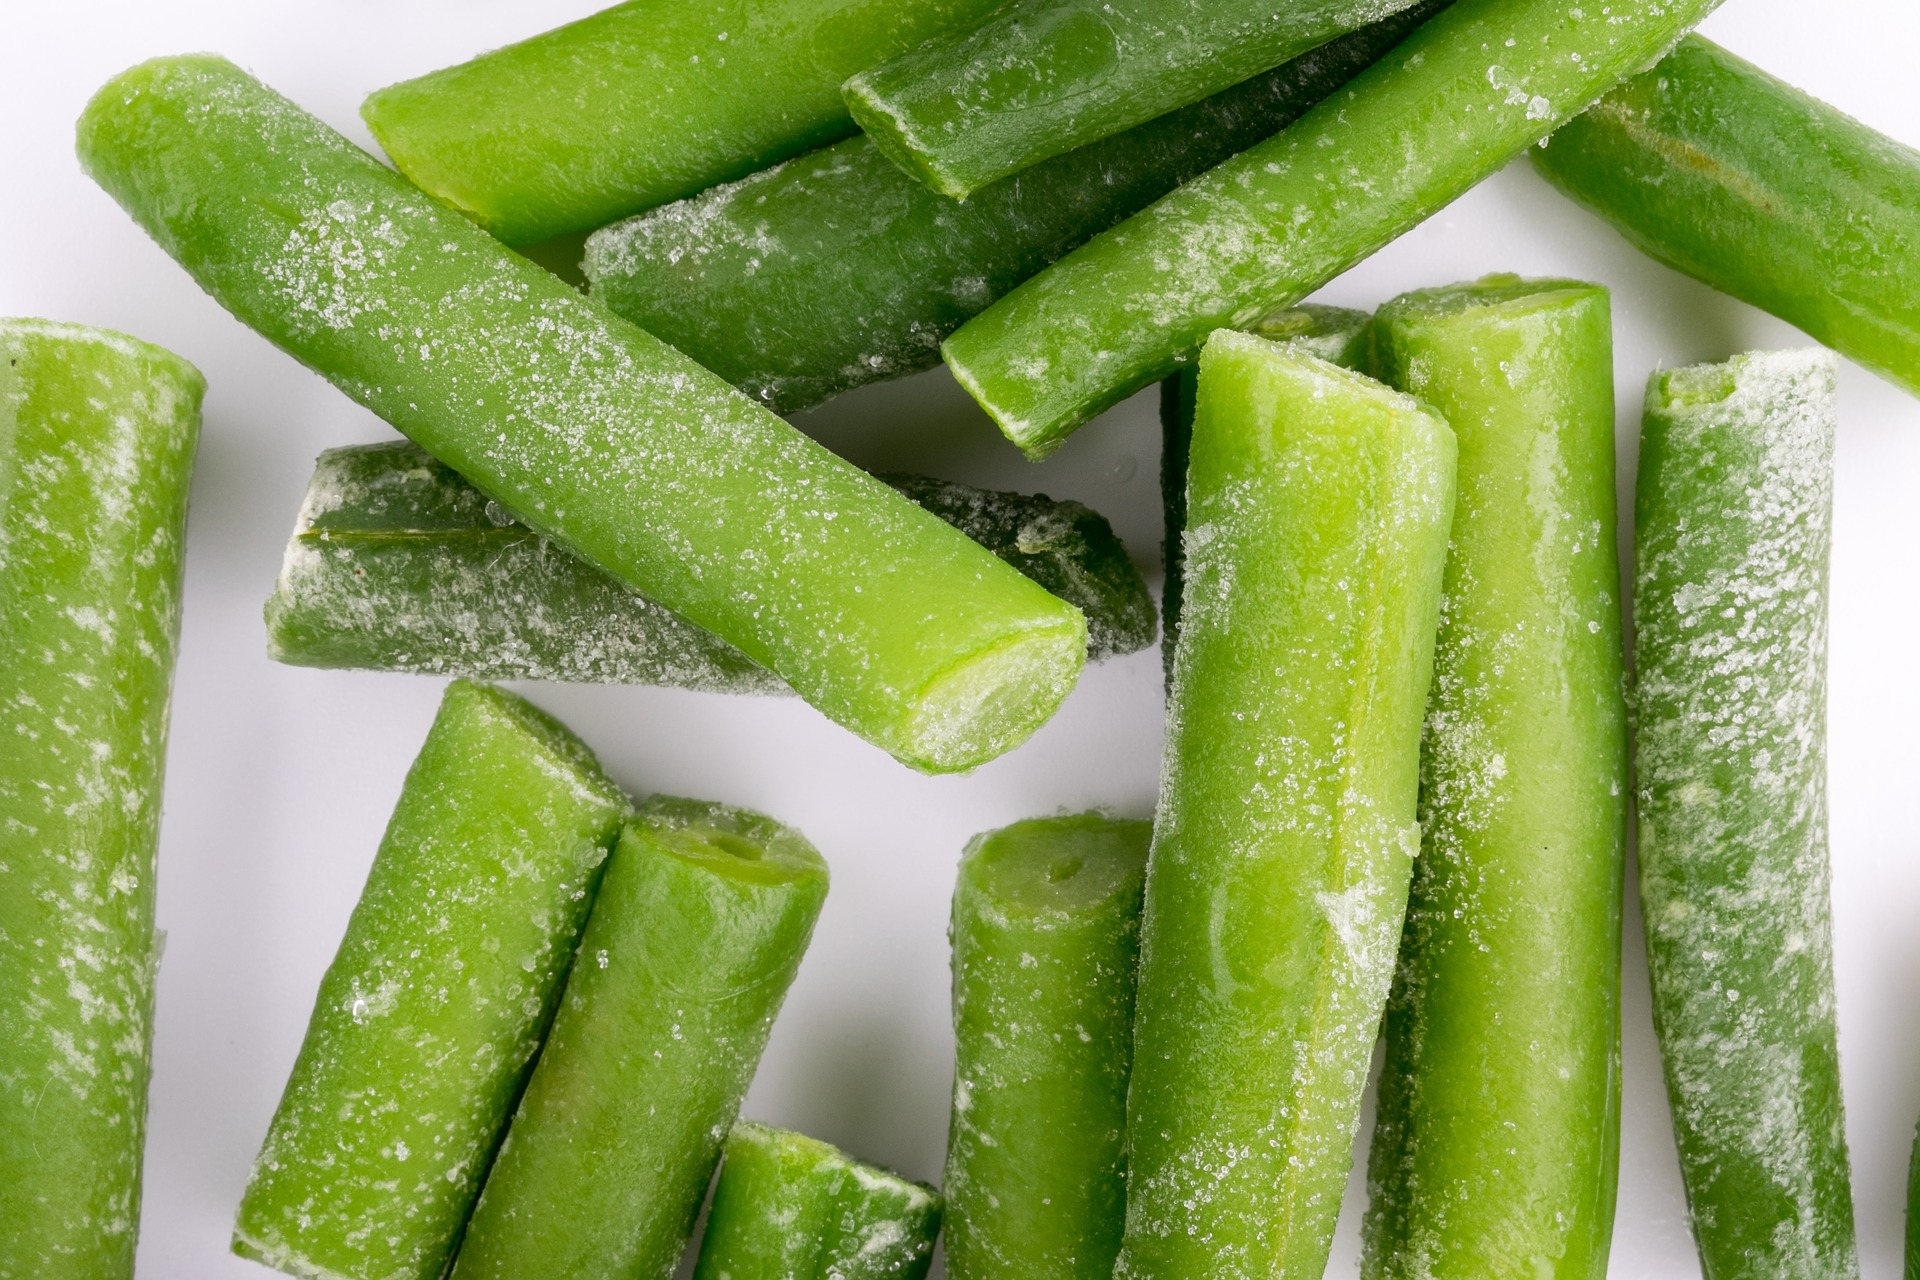 frozen vegetables recall